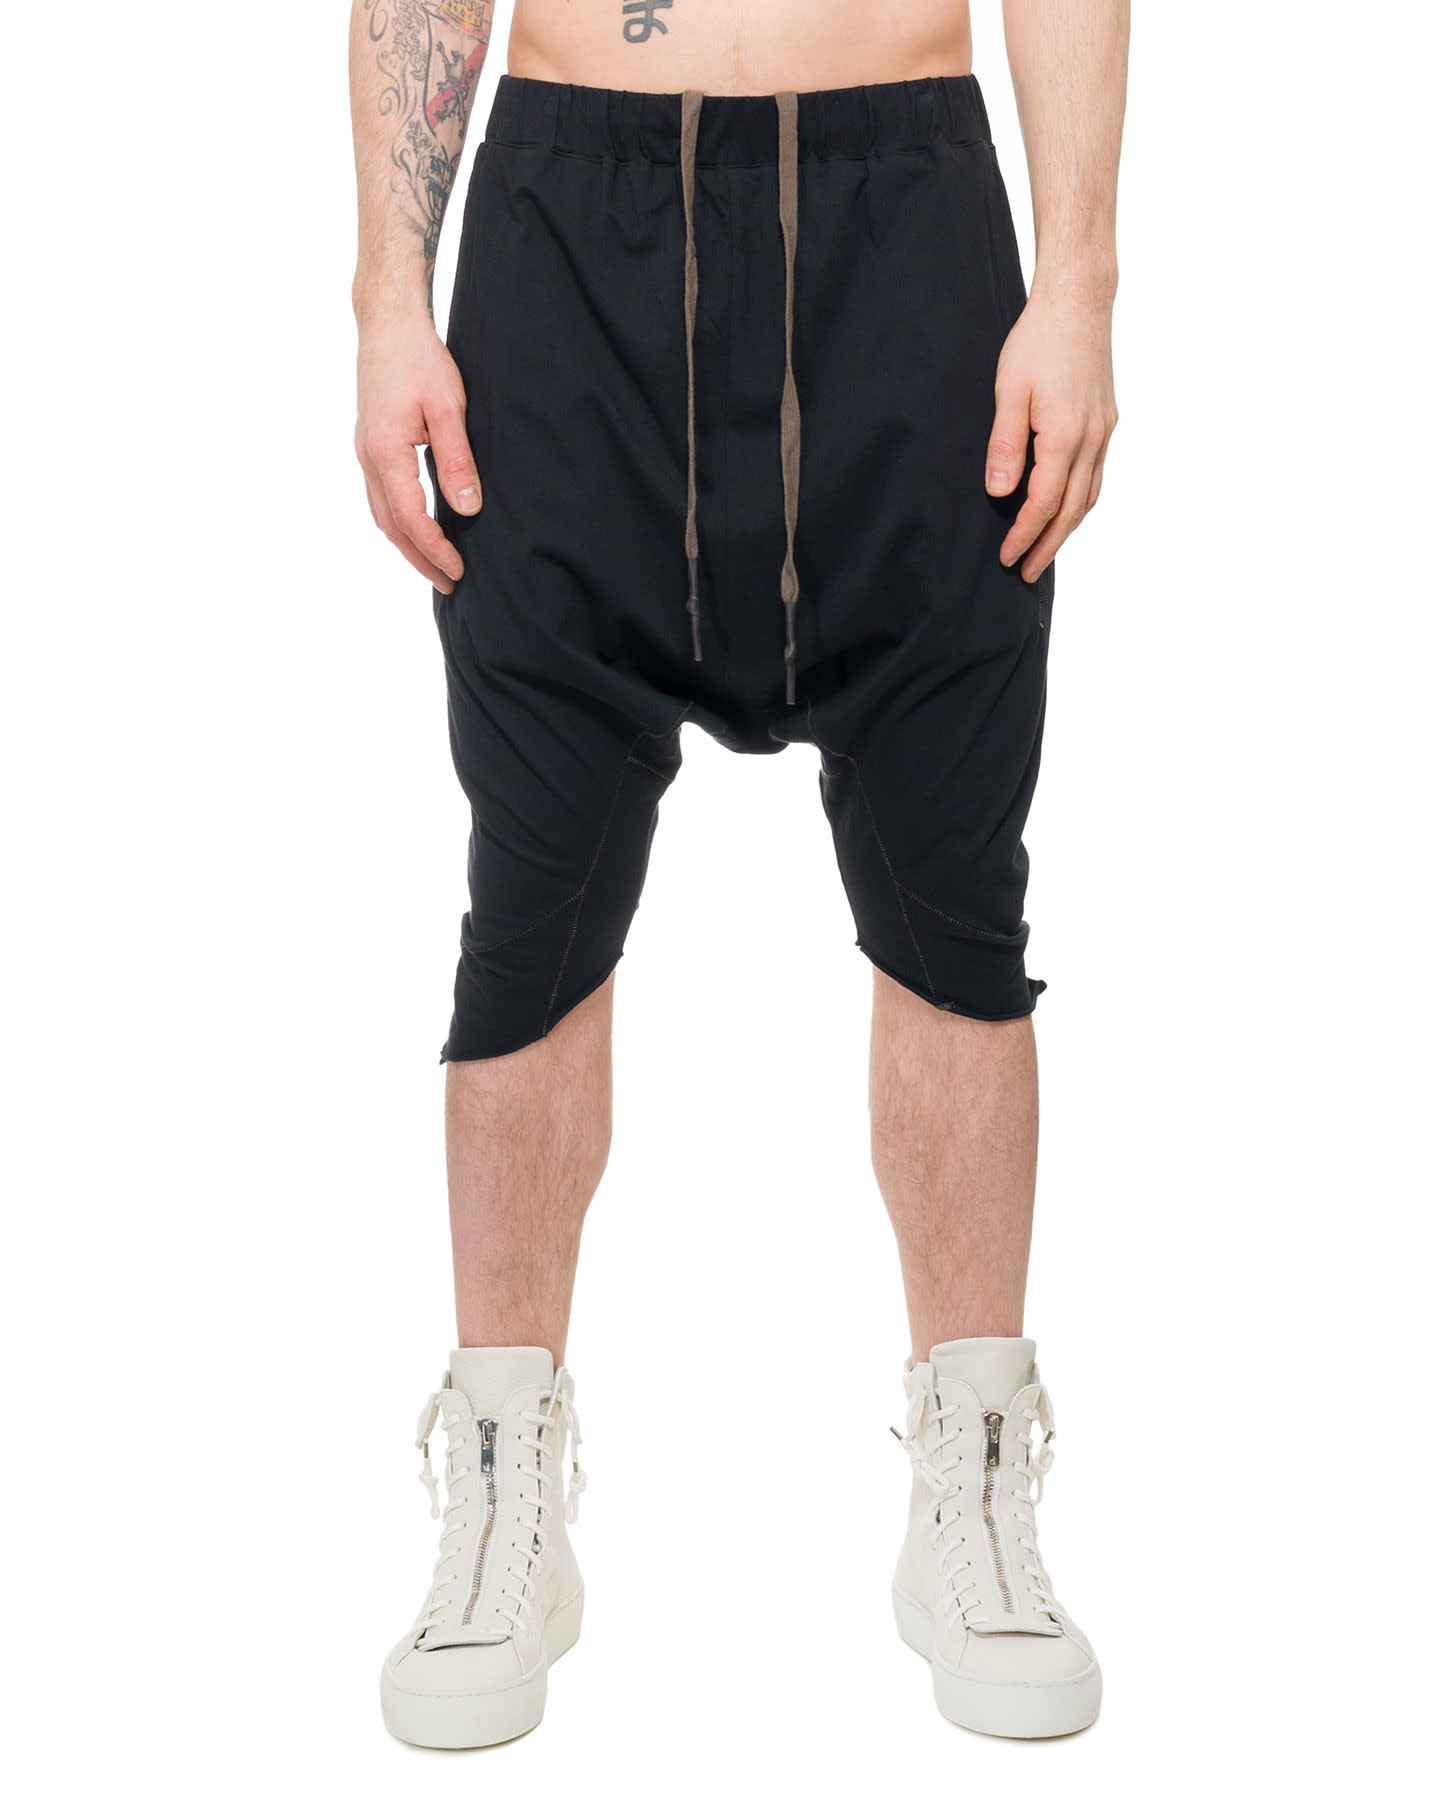 HOCLIDIC SHORTS - BLACK